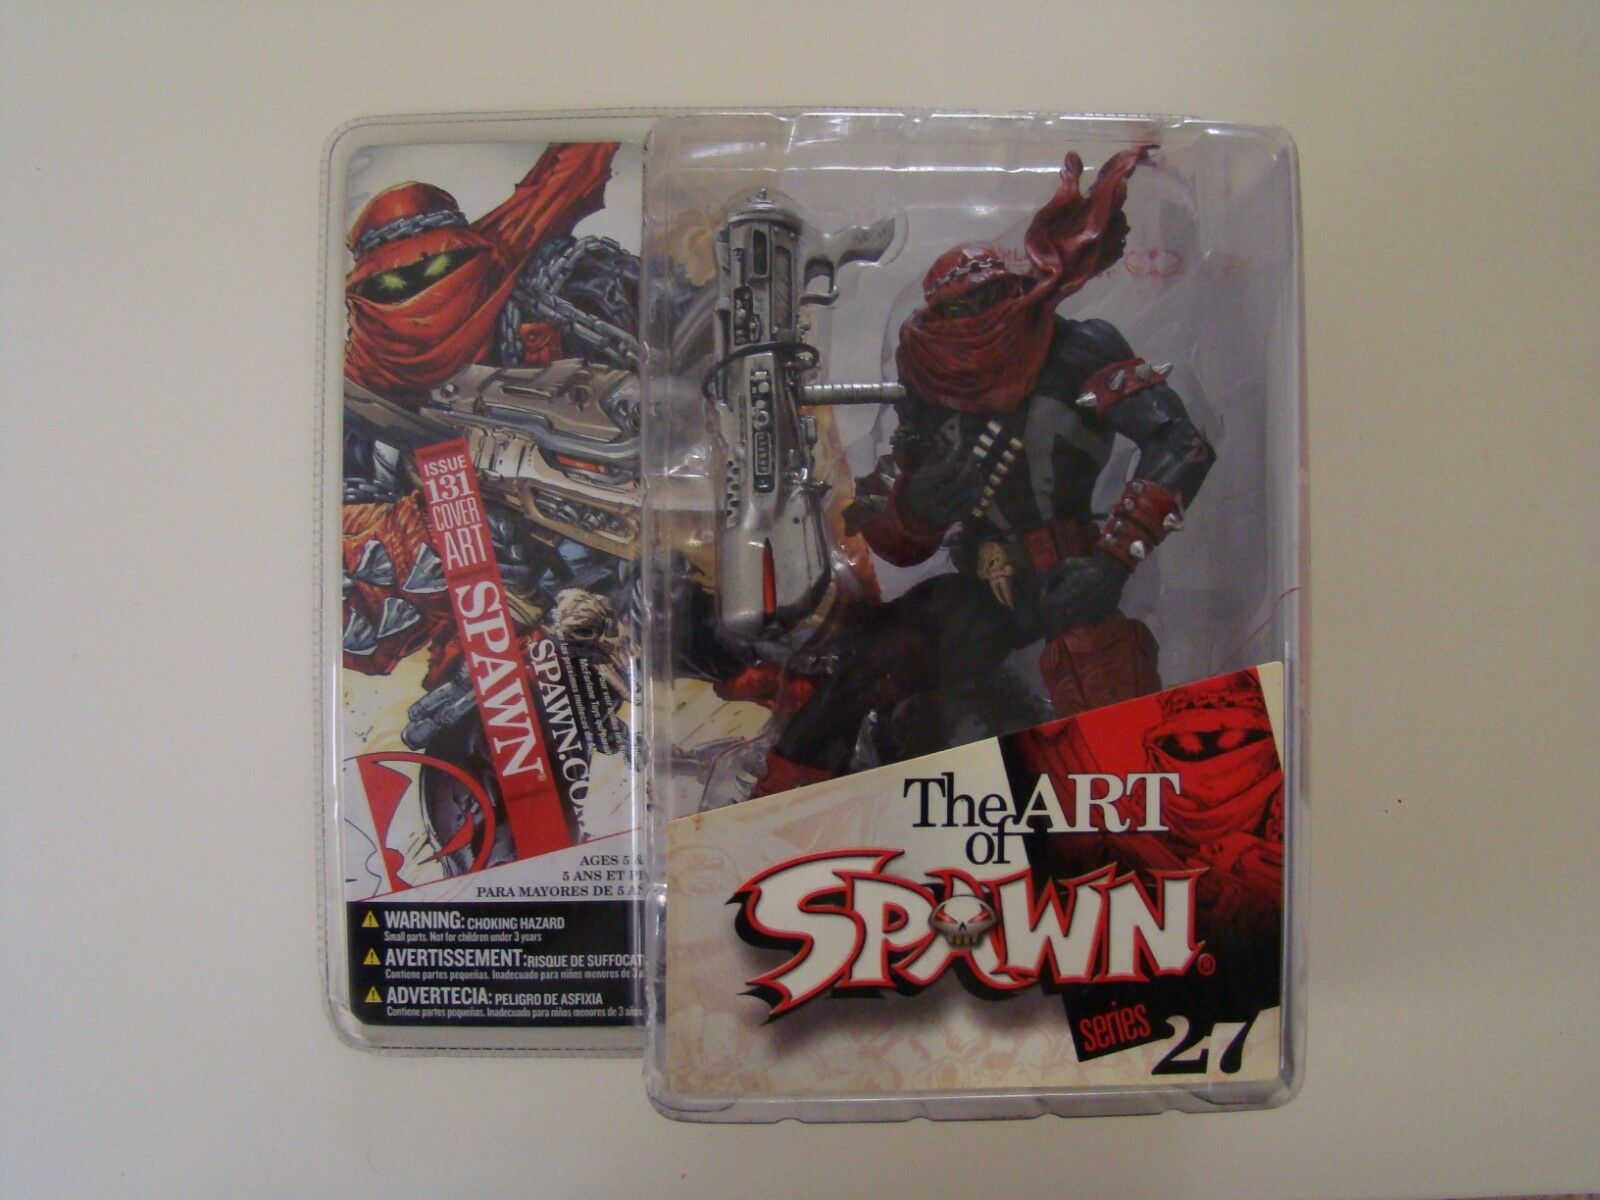 Figurine Spawn the Art of Spawn serie 27